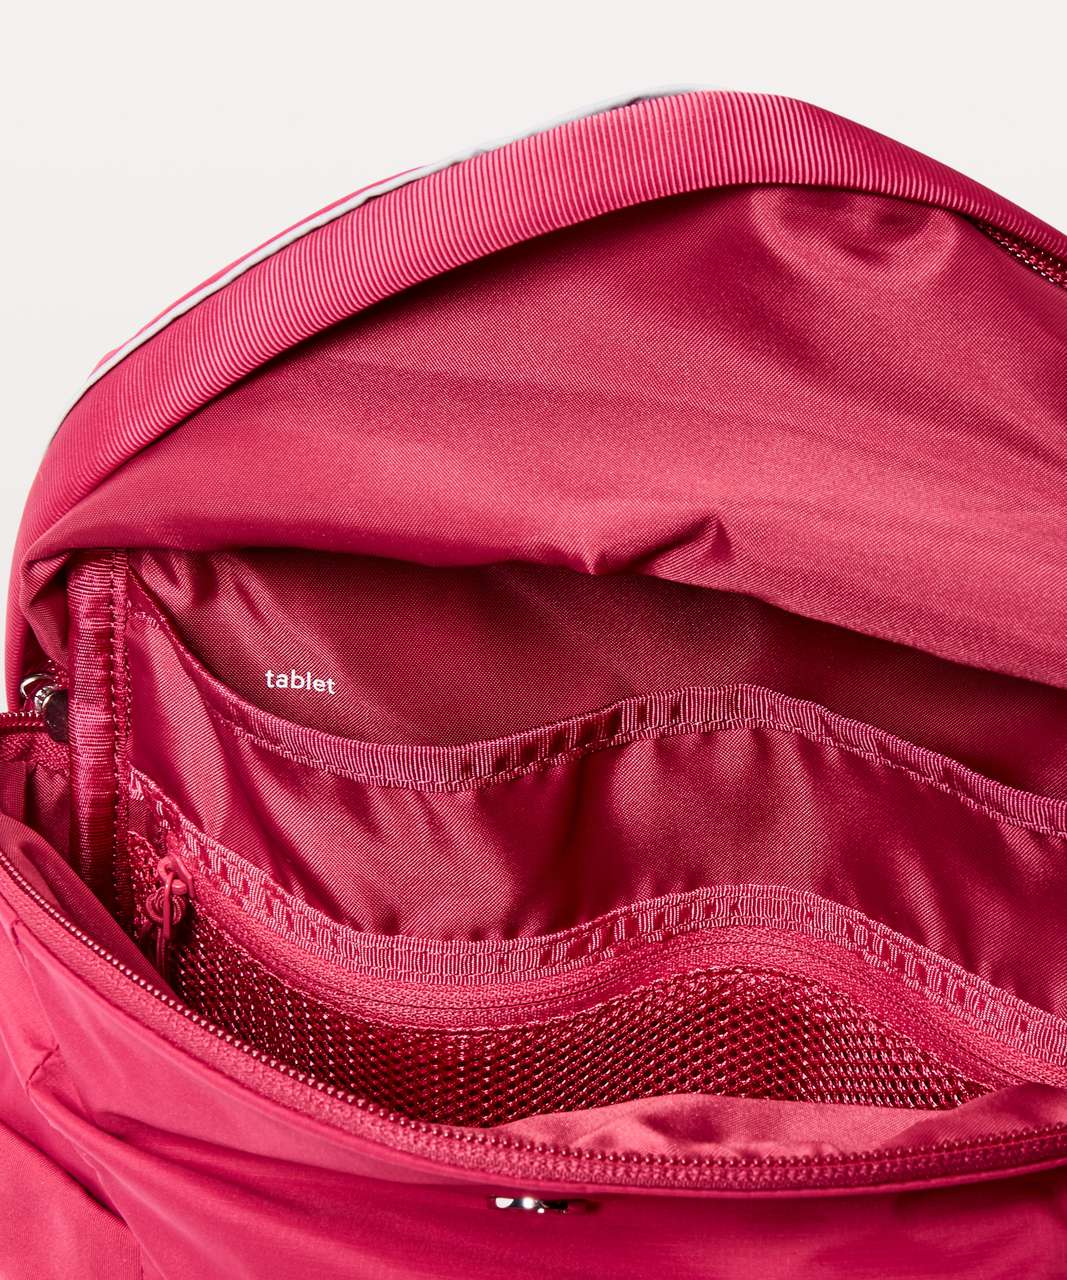 Lululemon Run All Day Backpack II *13L - Ruby Red